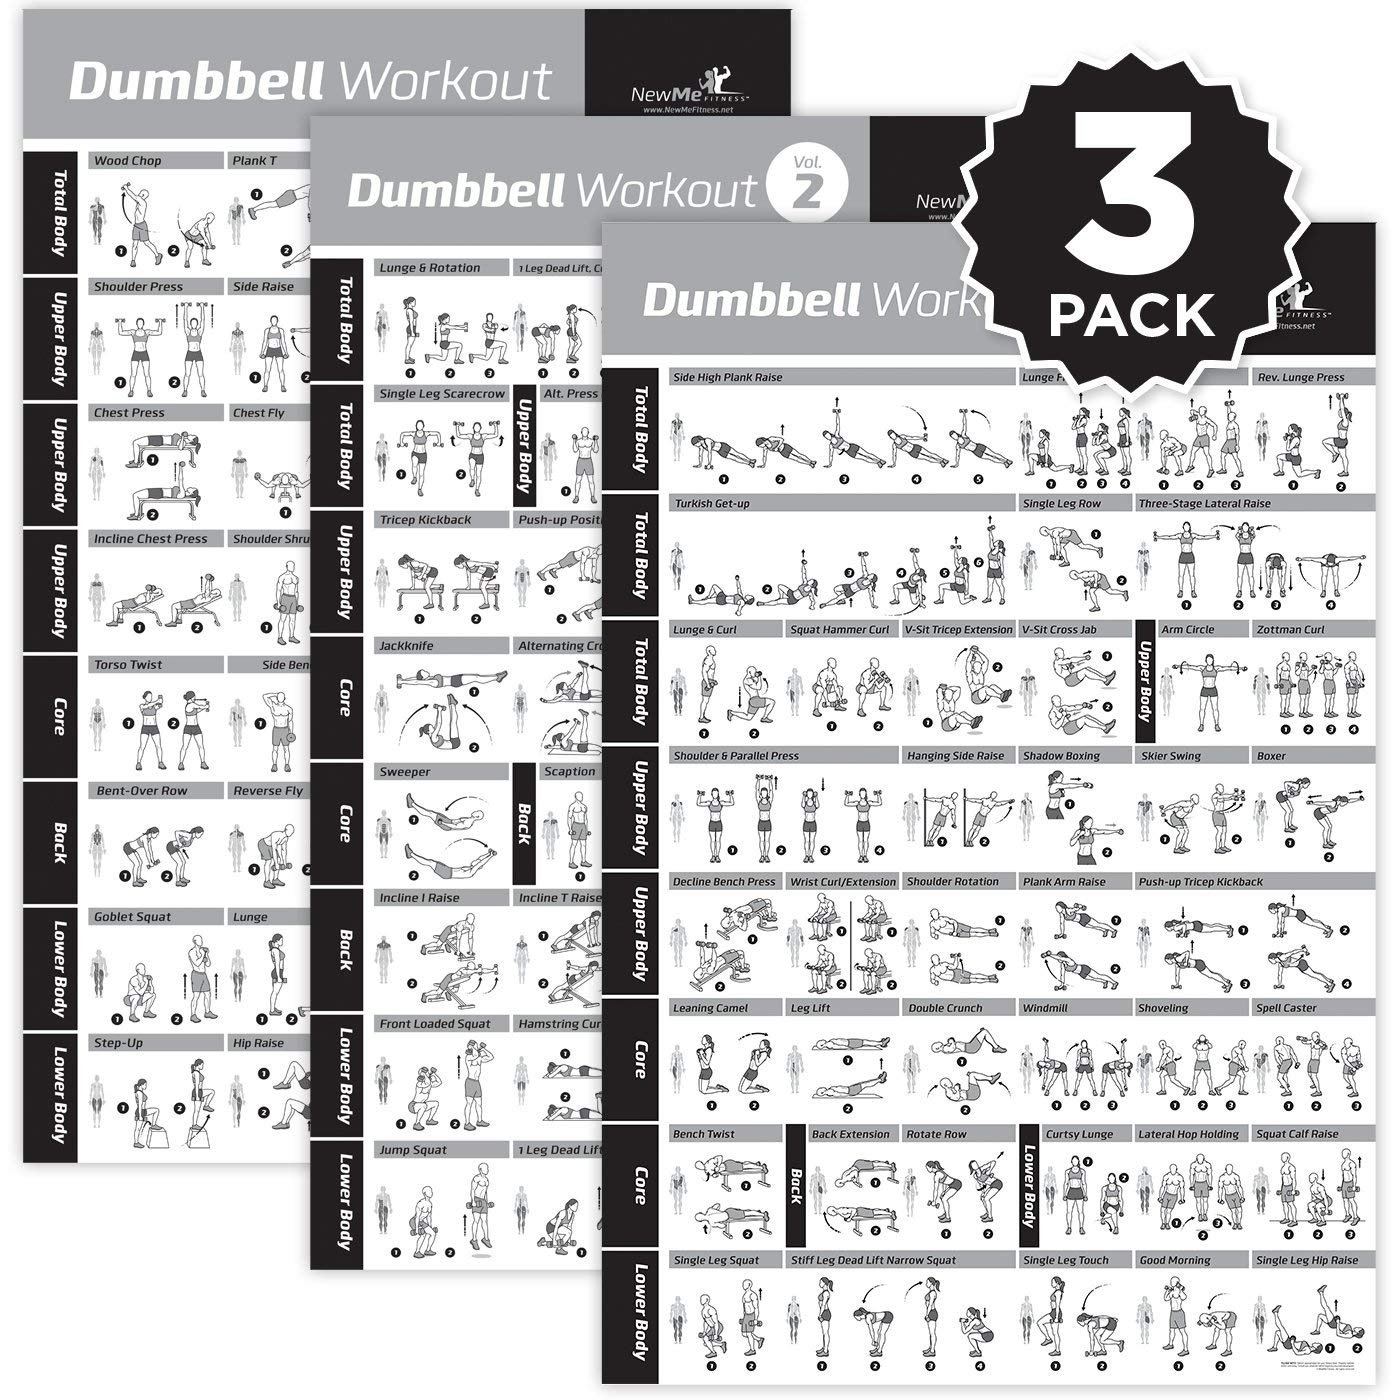 NewMe Fitness Dumbbell Workout Exercise Poster - Now Laminated